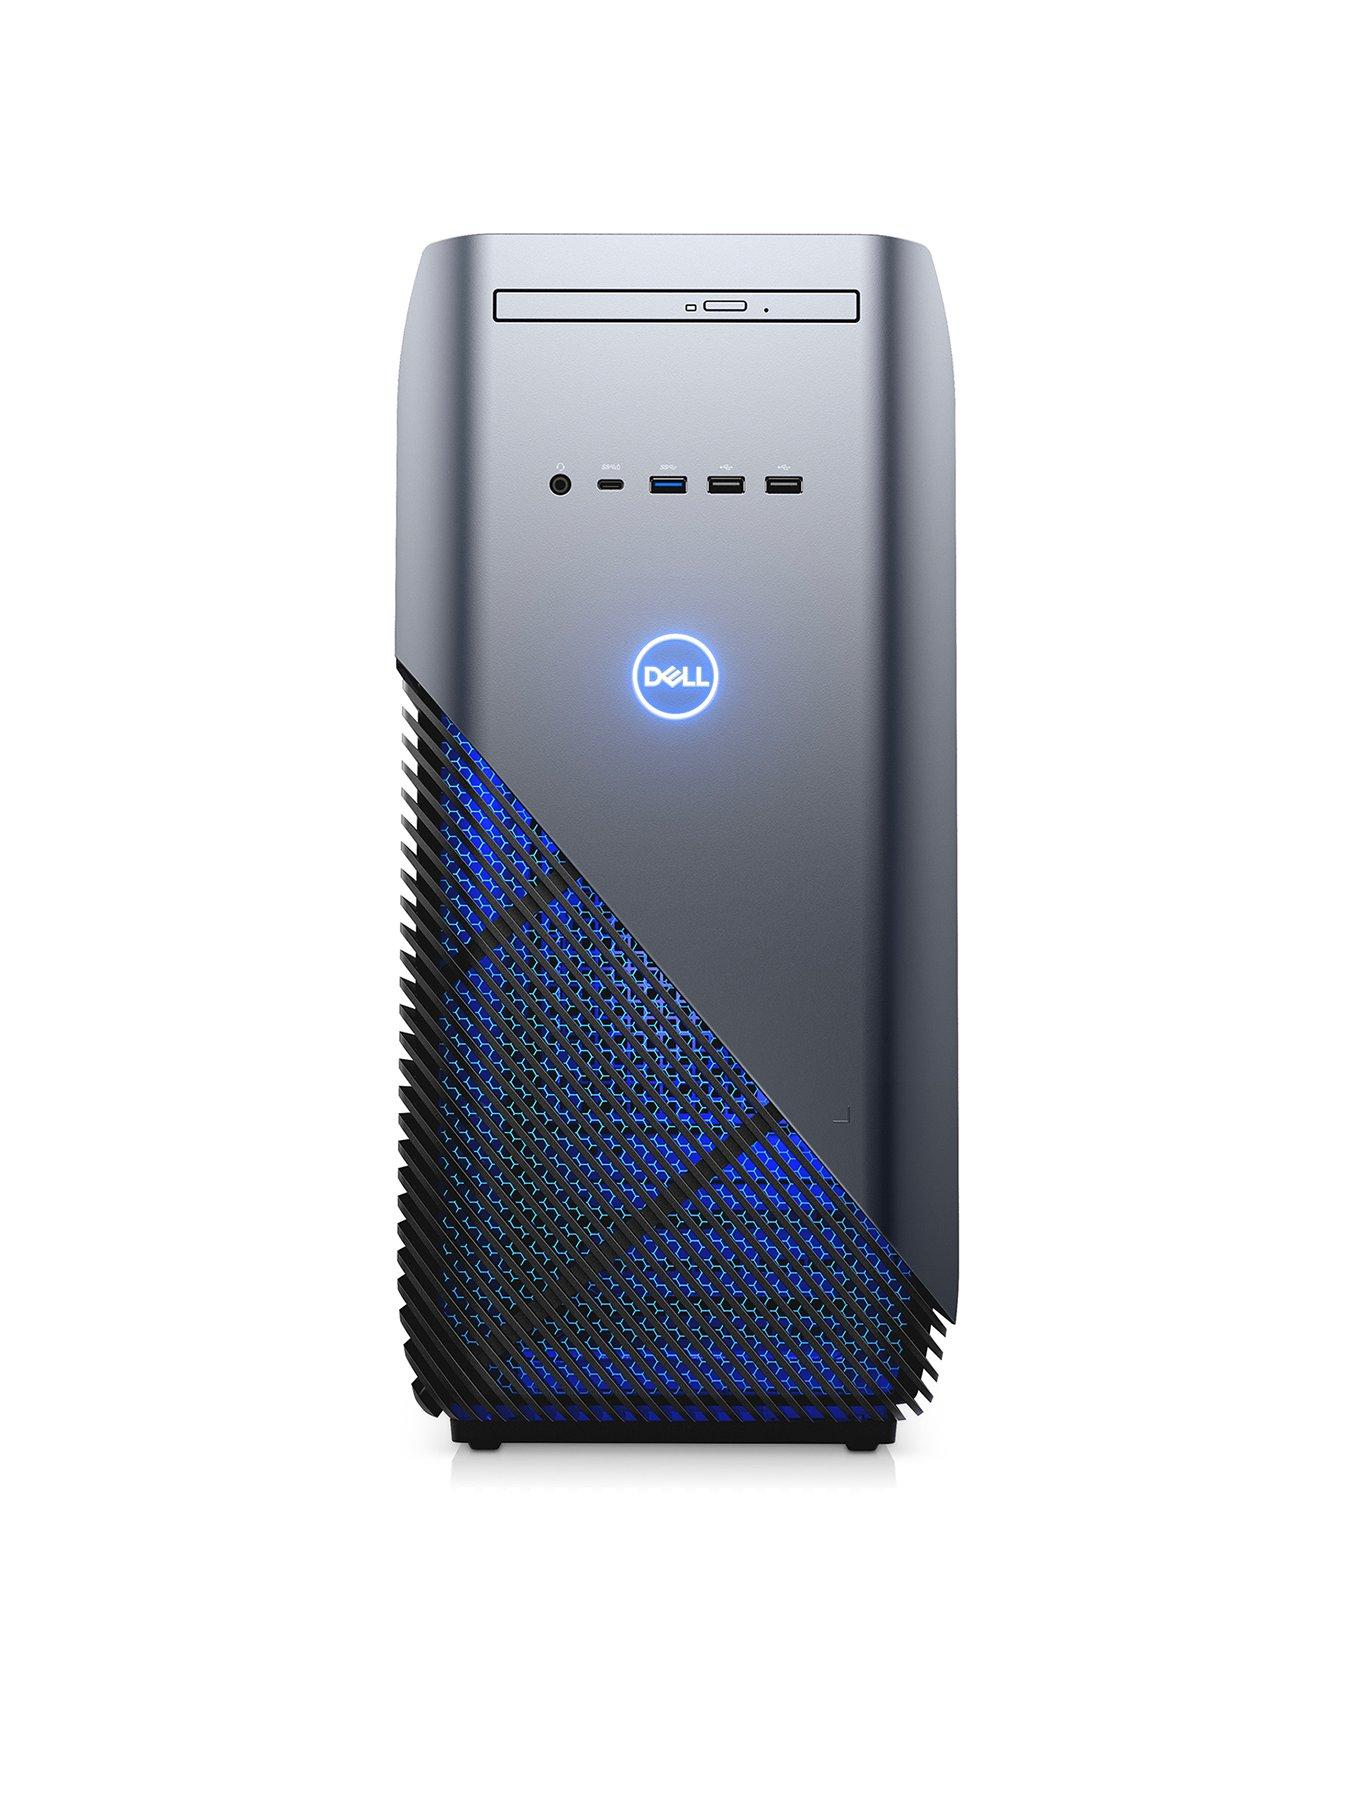 Dell Inspiron 5000 Gaming Series, Intel® Core™ i5-8400 Processor, 8GbDDR4 RAM, 1TbHDD & 128GbSSD, Gaming PC with NVIDIA GeForce GTX 1060 Graphicswith GAMING SOFTWARE PACK